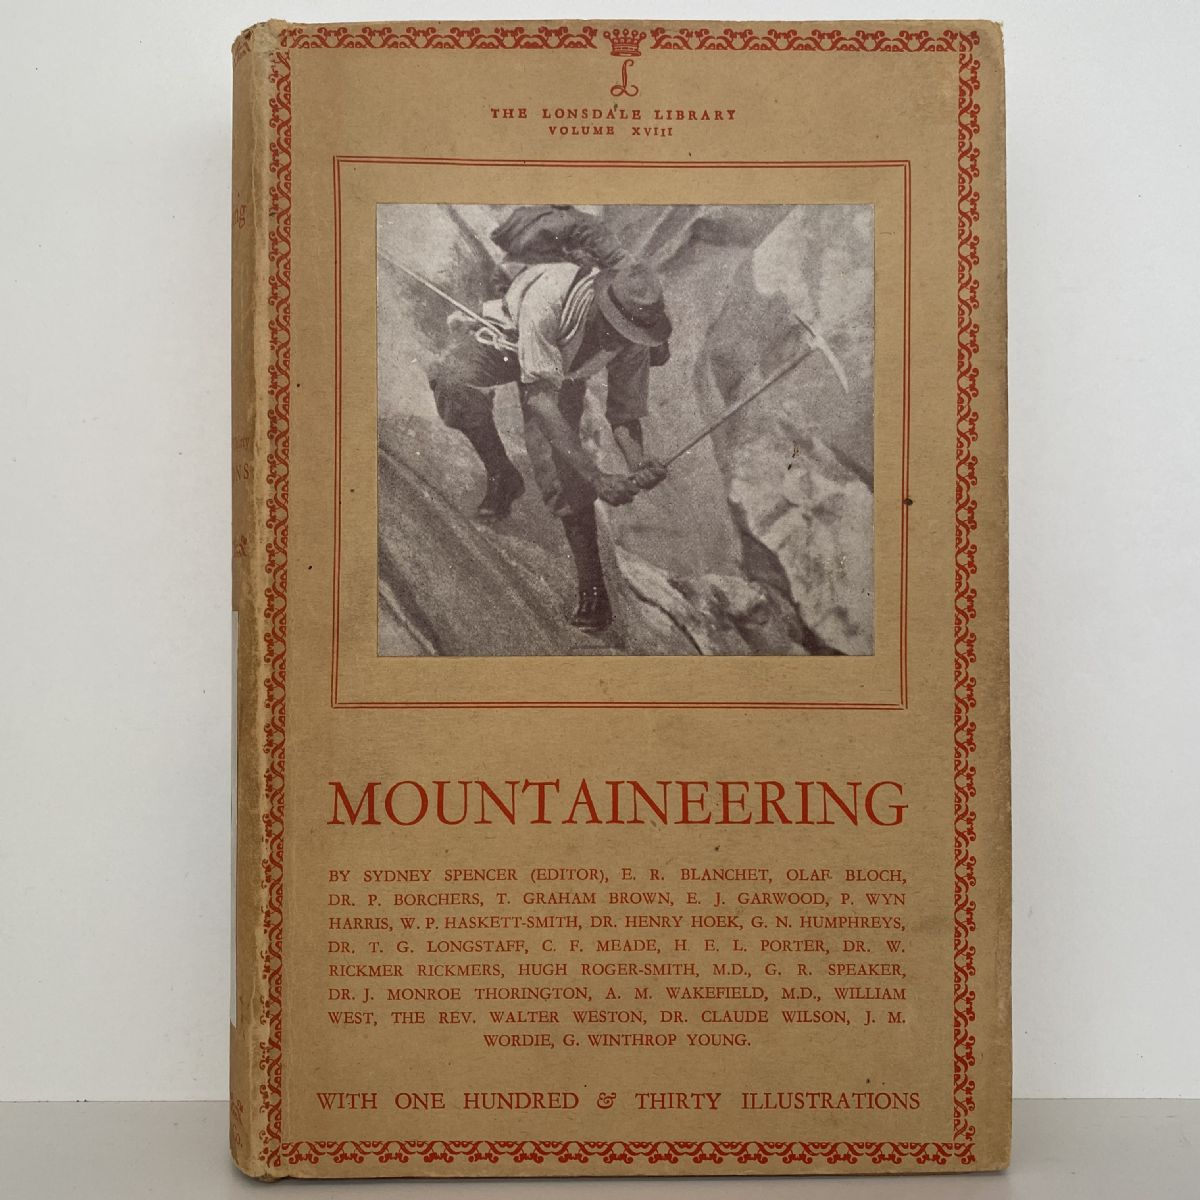 MOUNTAINEERING: The Lonsdale Library VOL 18